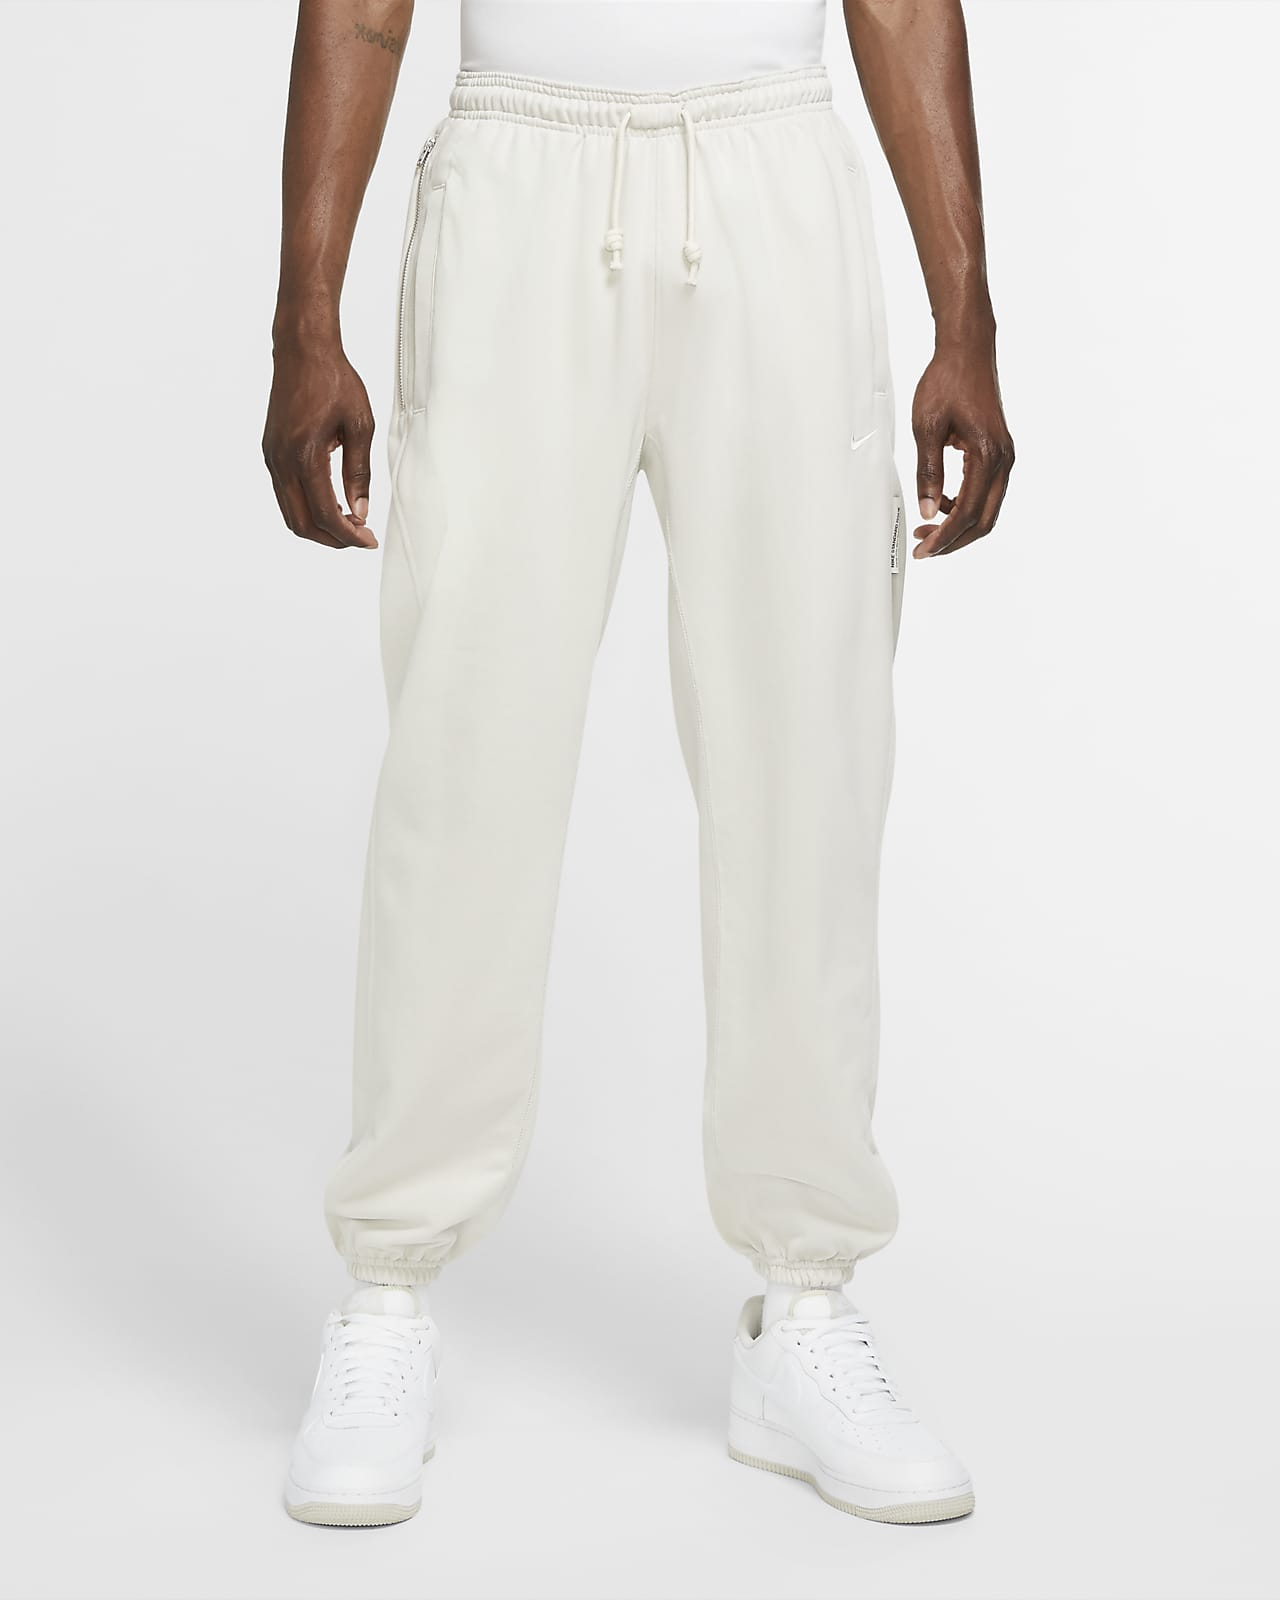 Nike Dri-FIT Standard Issue Men's Basketball Pants